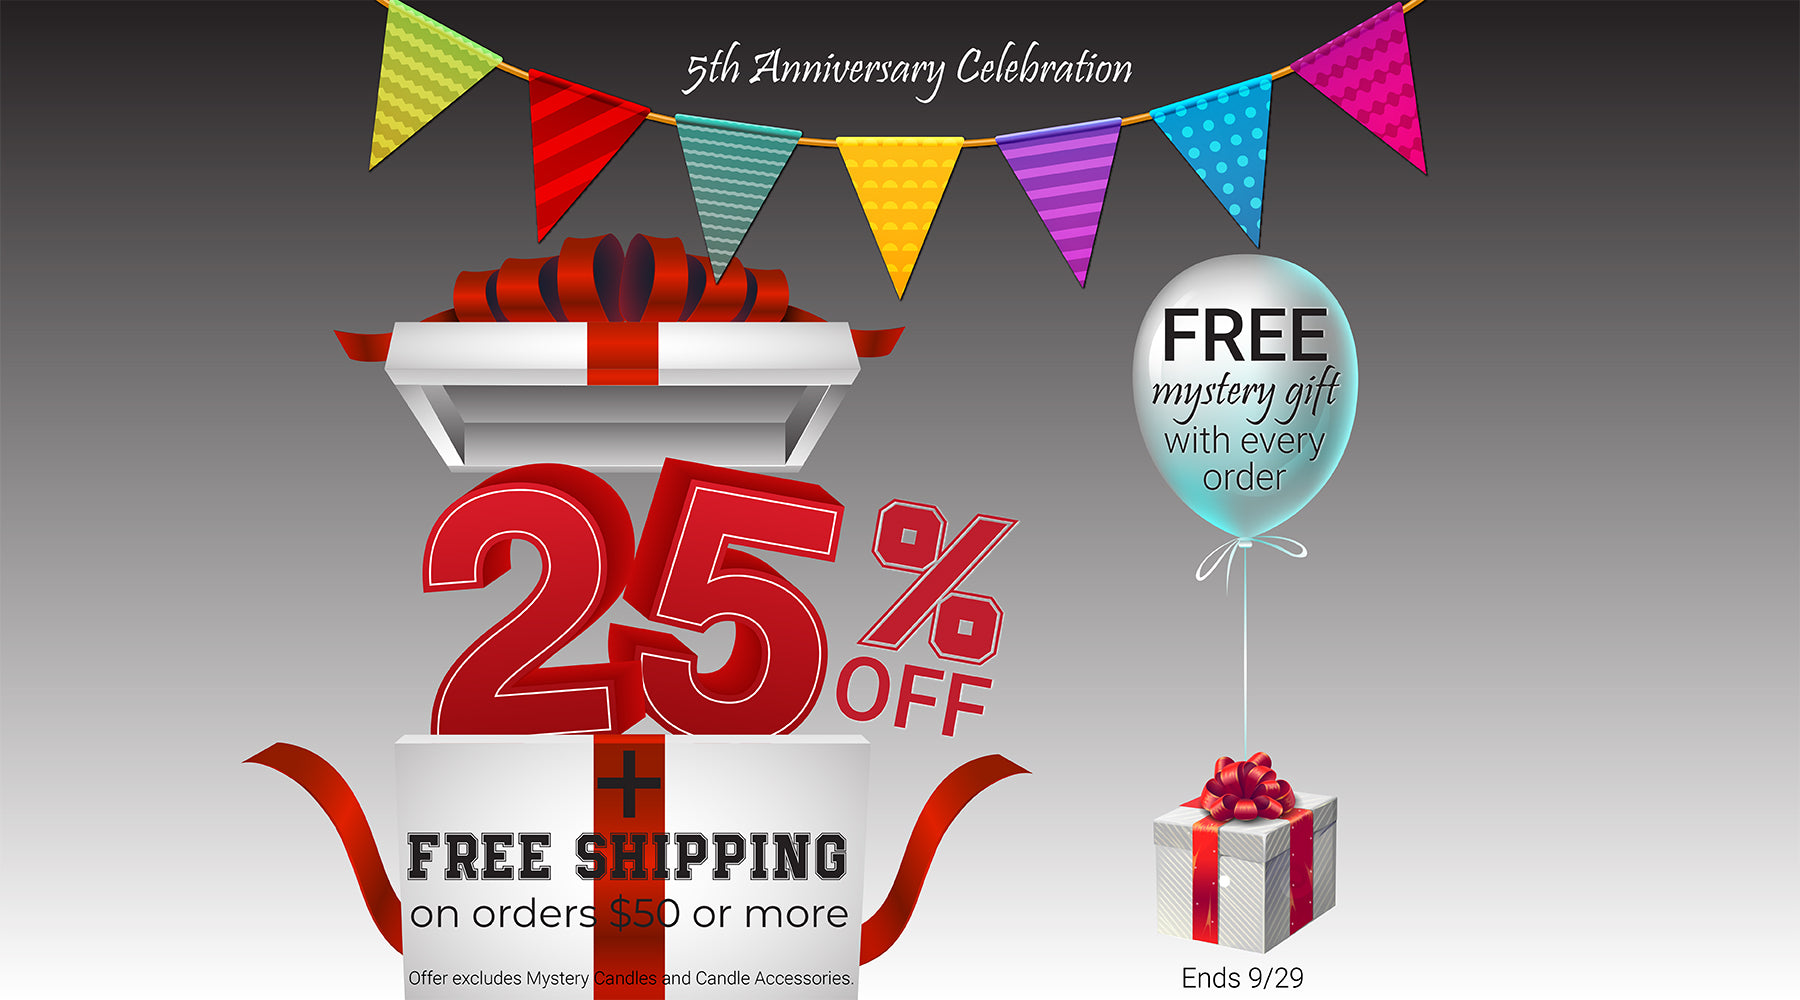 5th Anniversary Celebration! 25% OFF + FREE mystery gift + FREE SHIPPING on orders $50 or more. Ends 9/29. Offer excludes Mystery Candles and Candle Accessories.